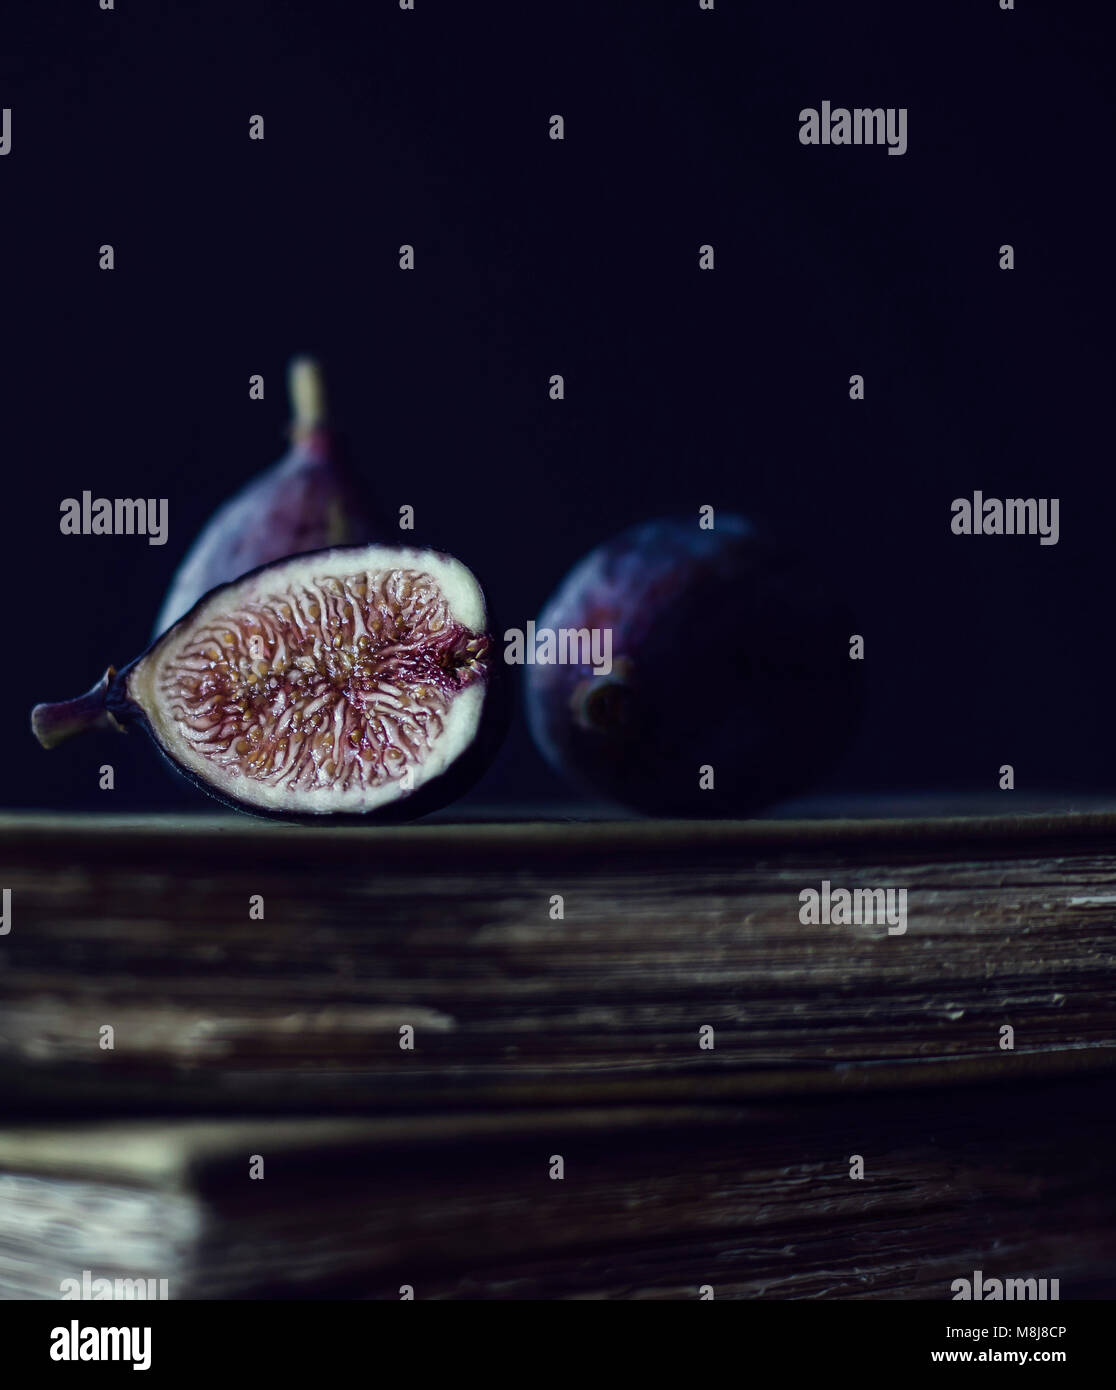 Ripe Figs Positioned on Top of Antique Books - Stock Image